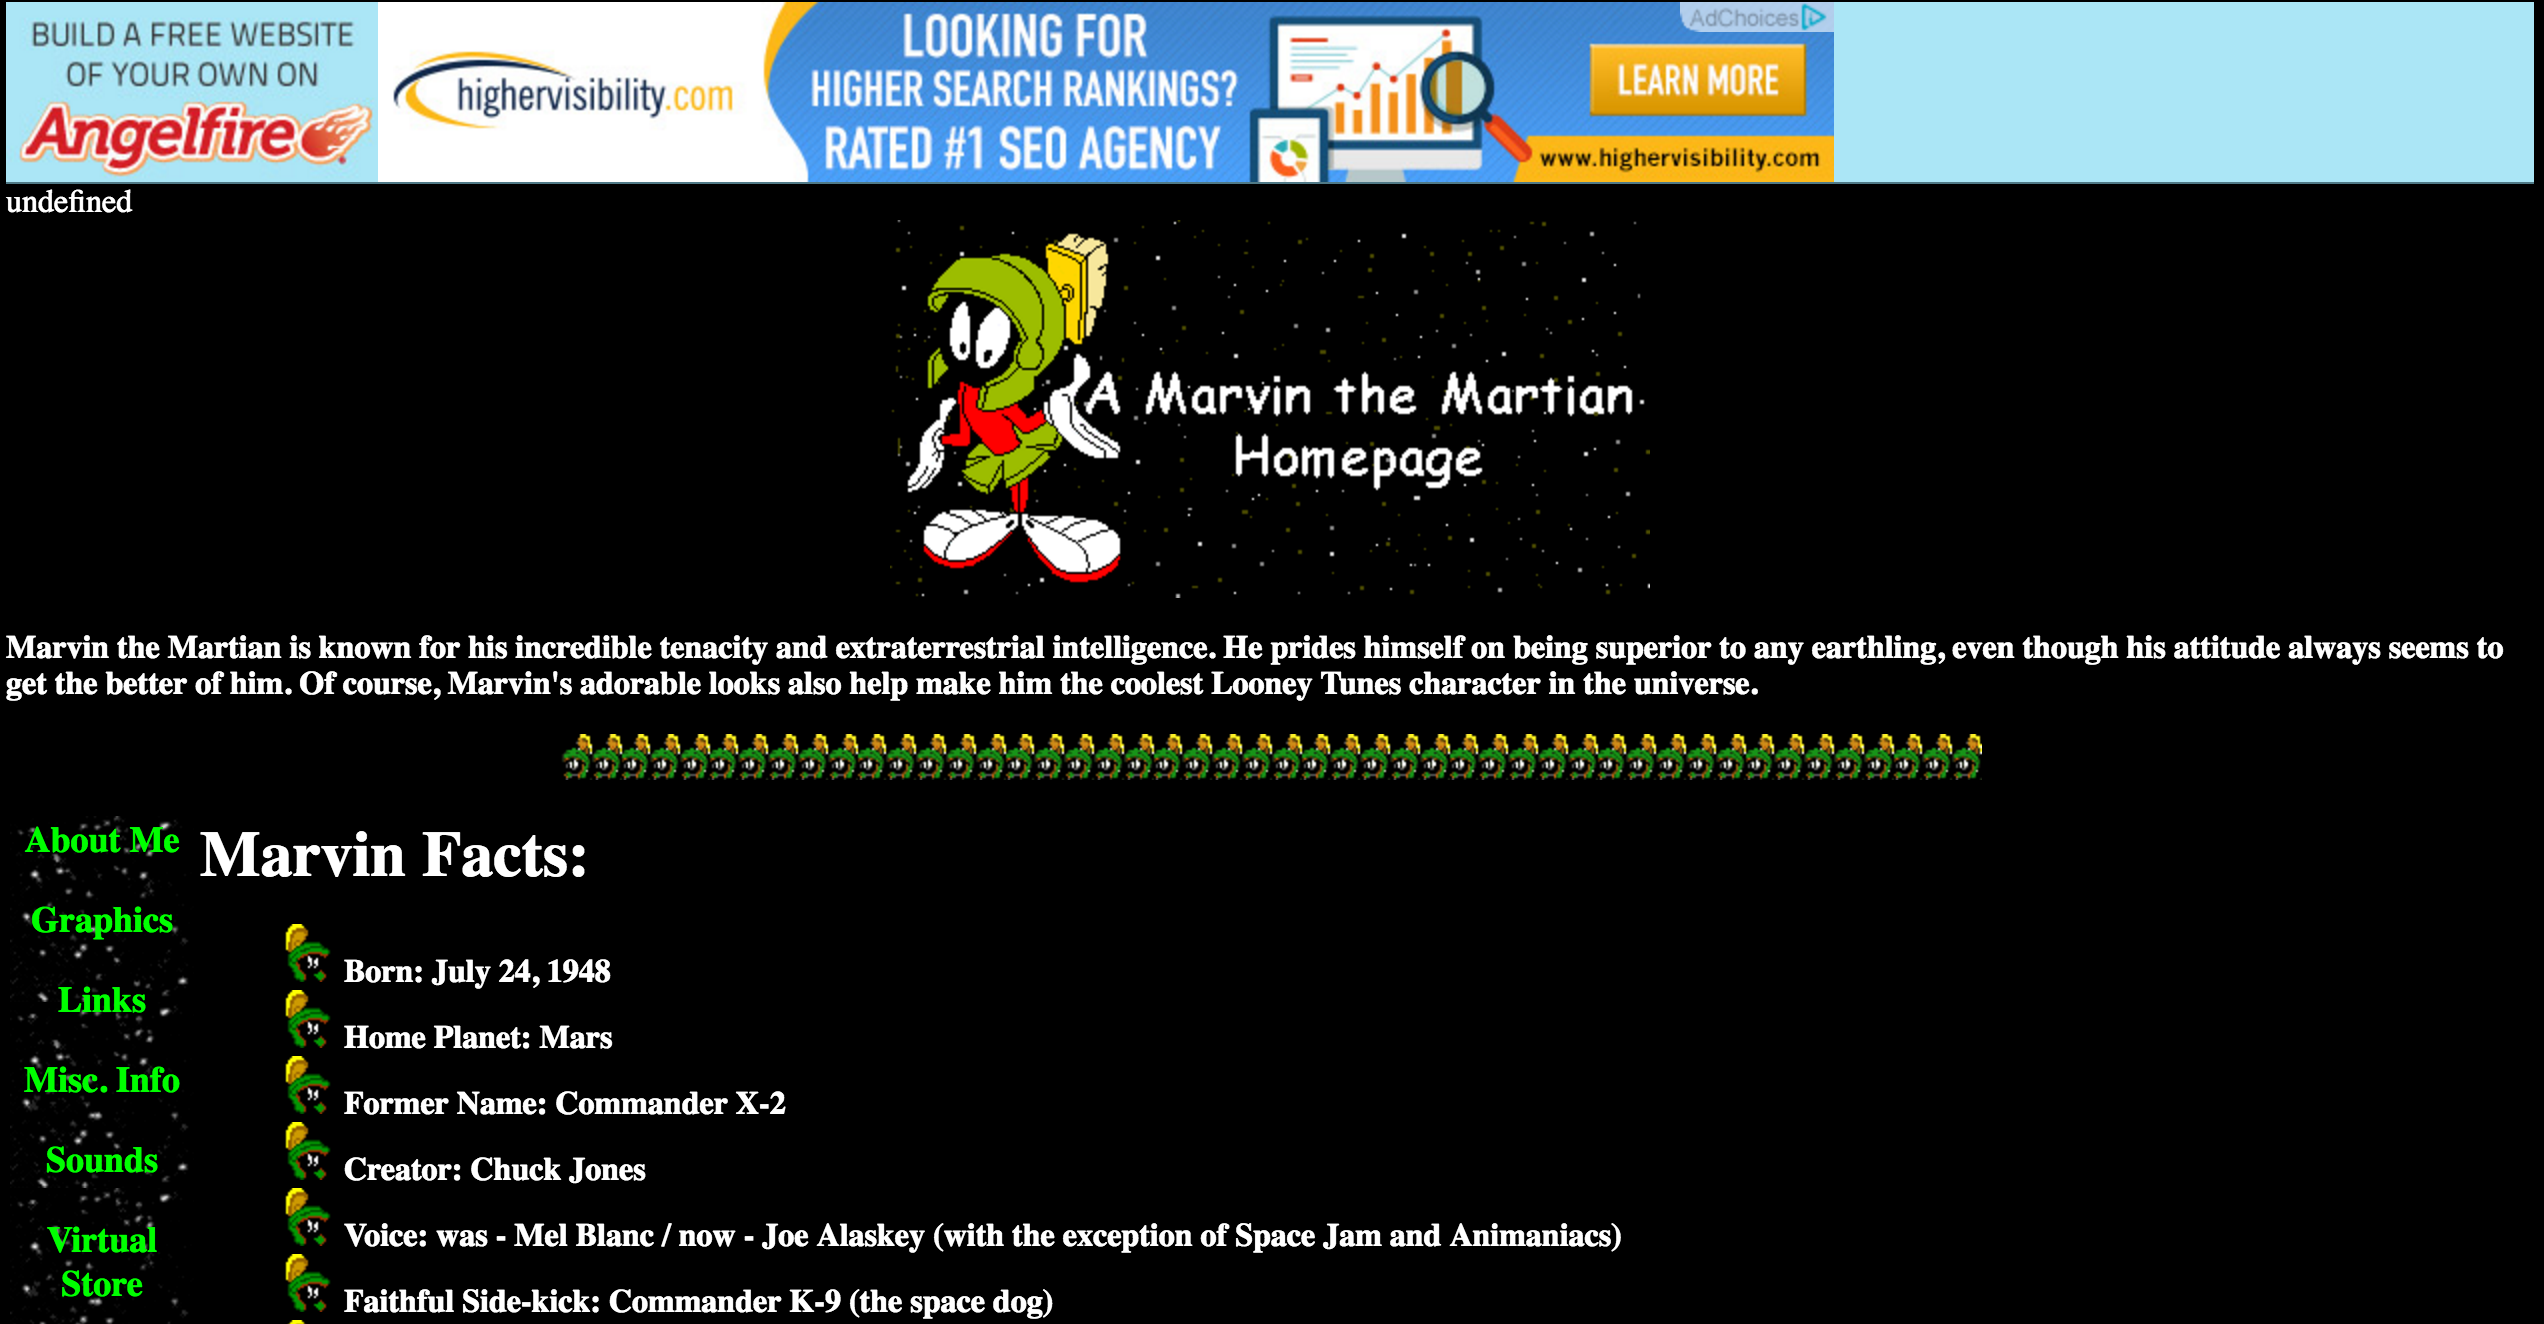 Marvin the Martian Website